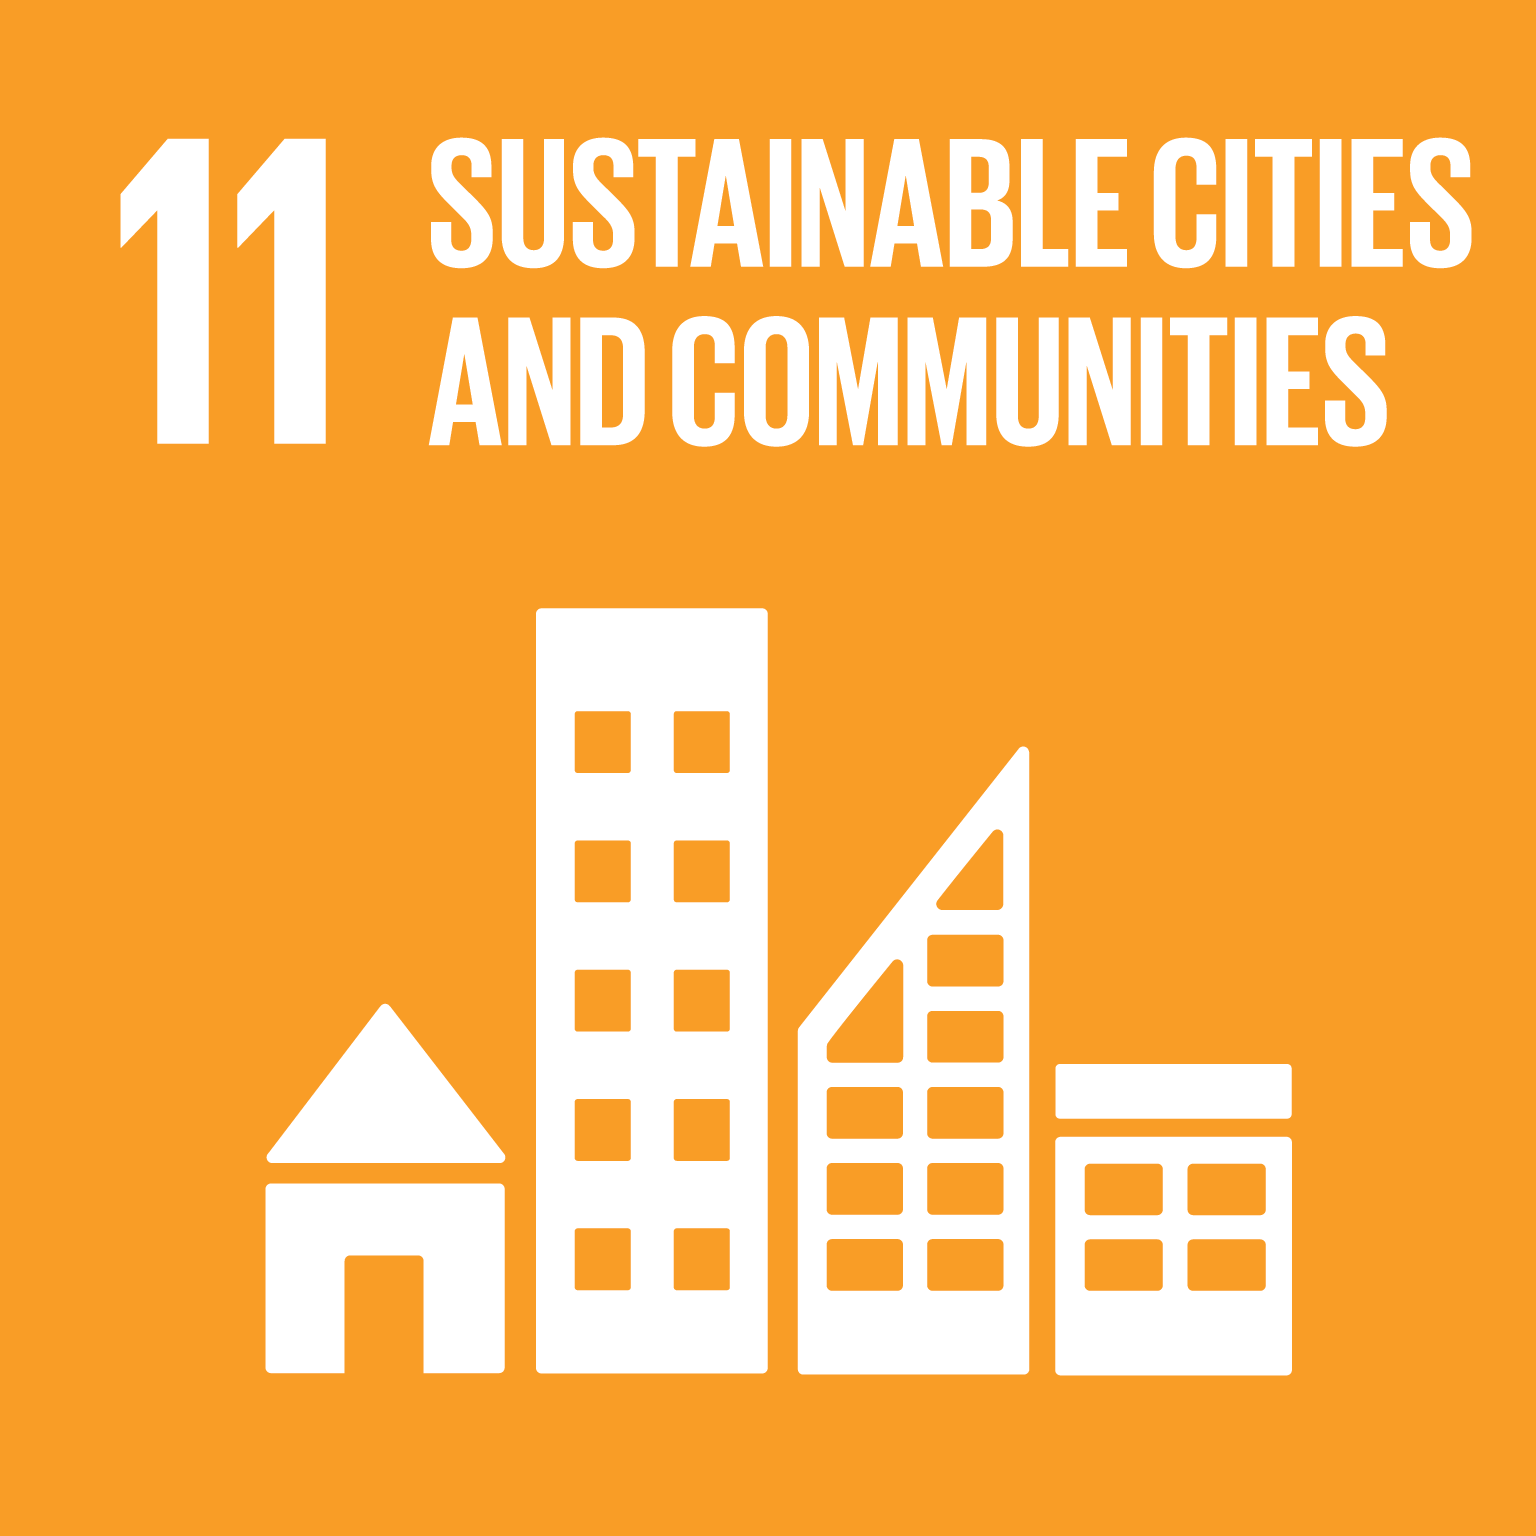 Goal 11: Sustainable Communities, the text of this infographic is listed below